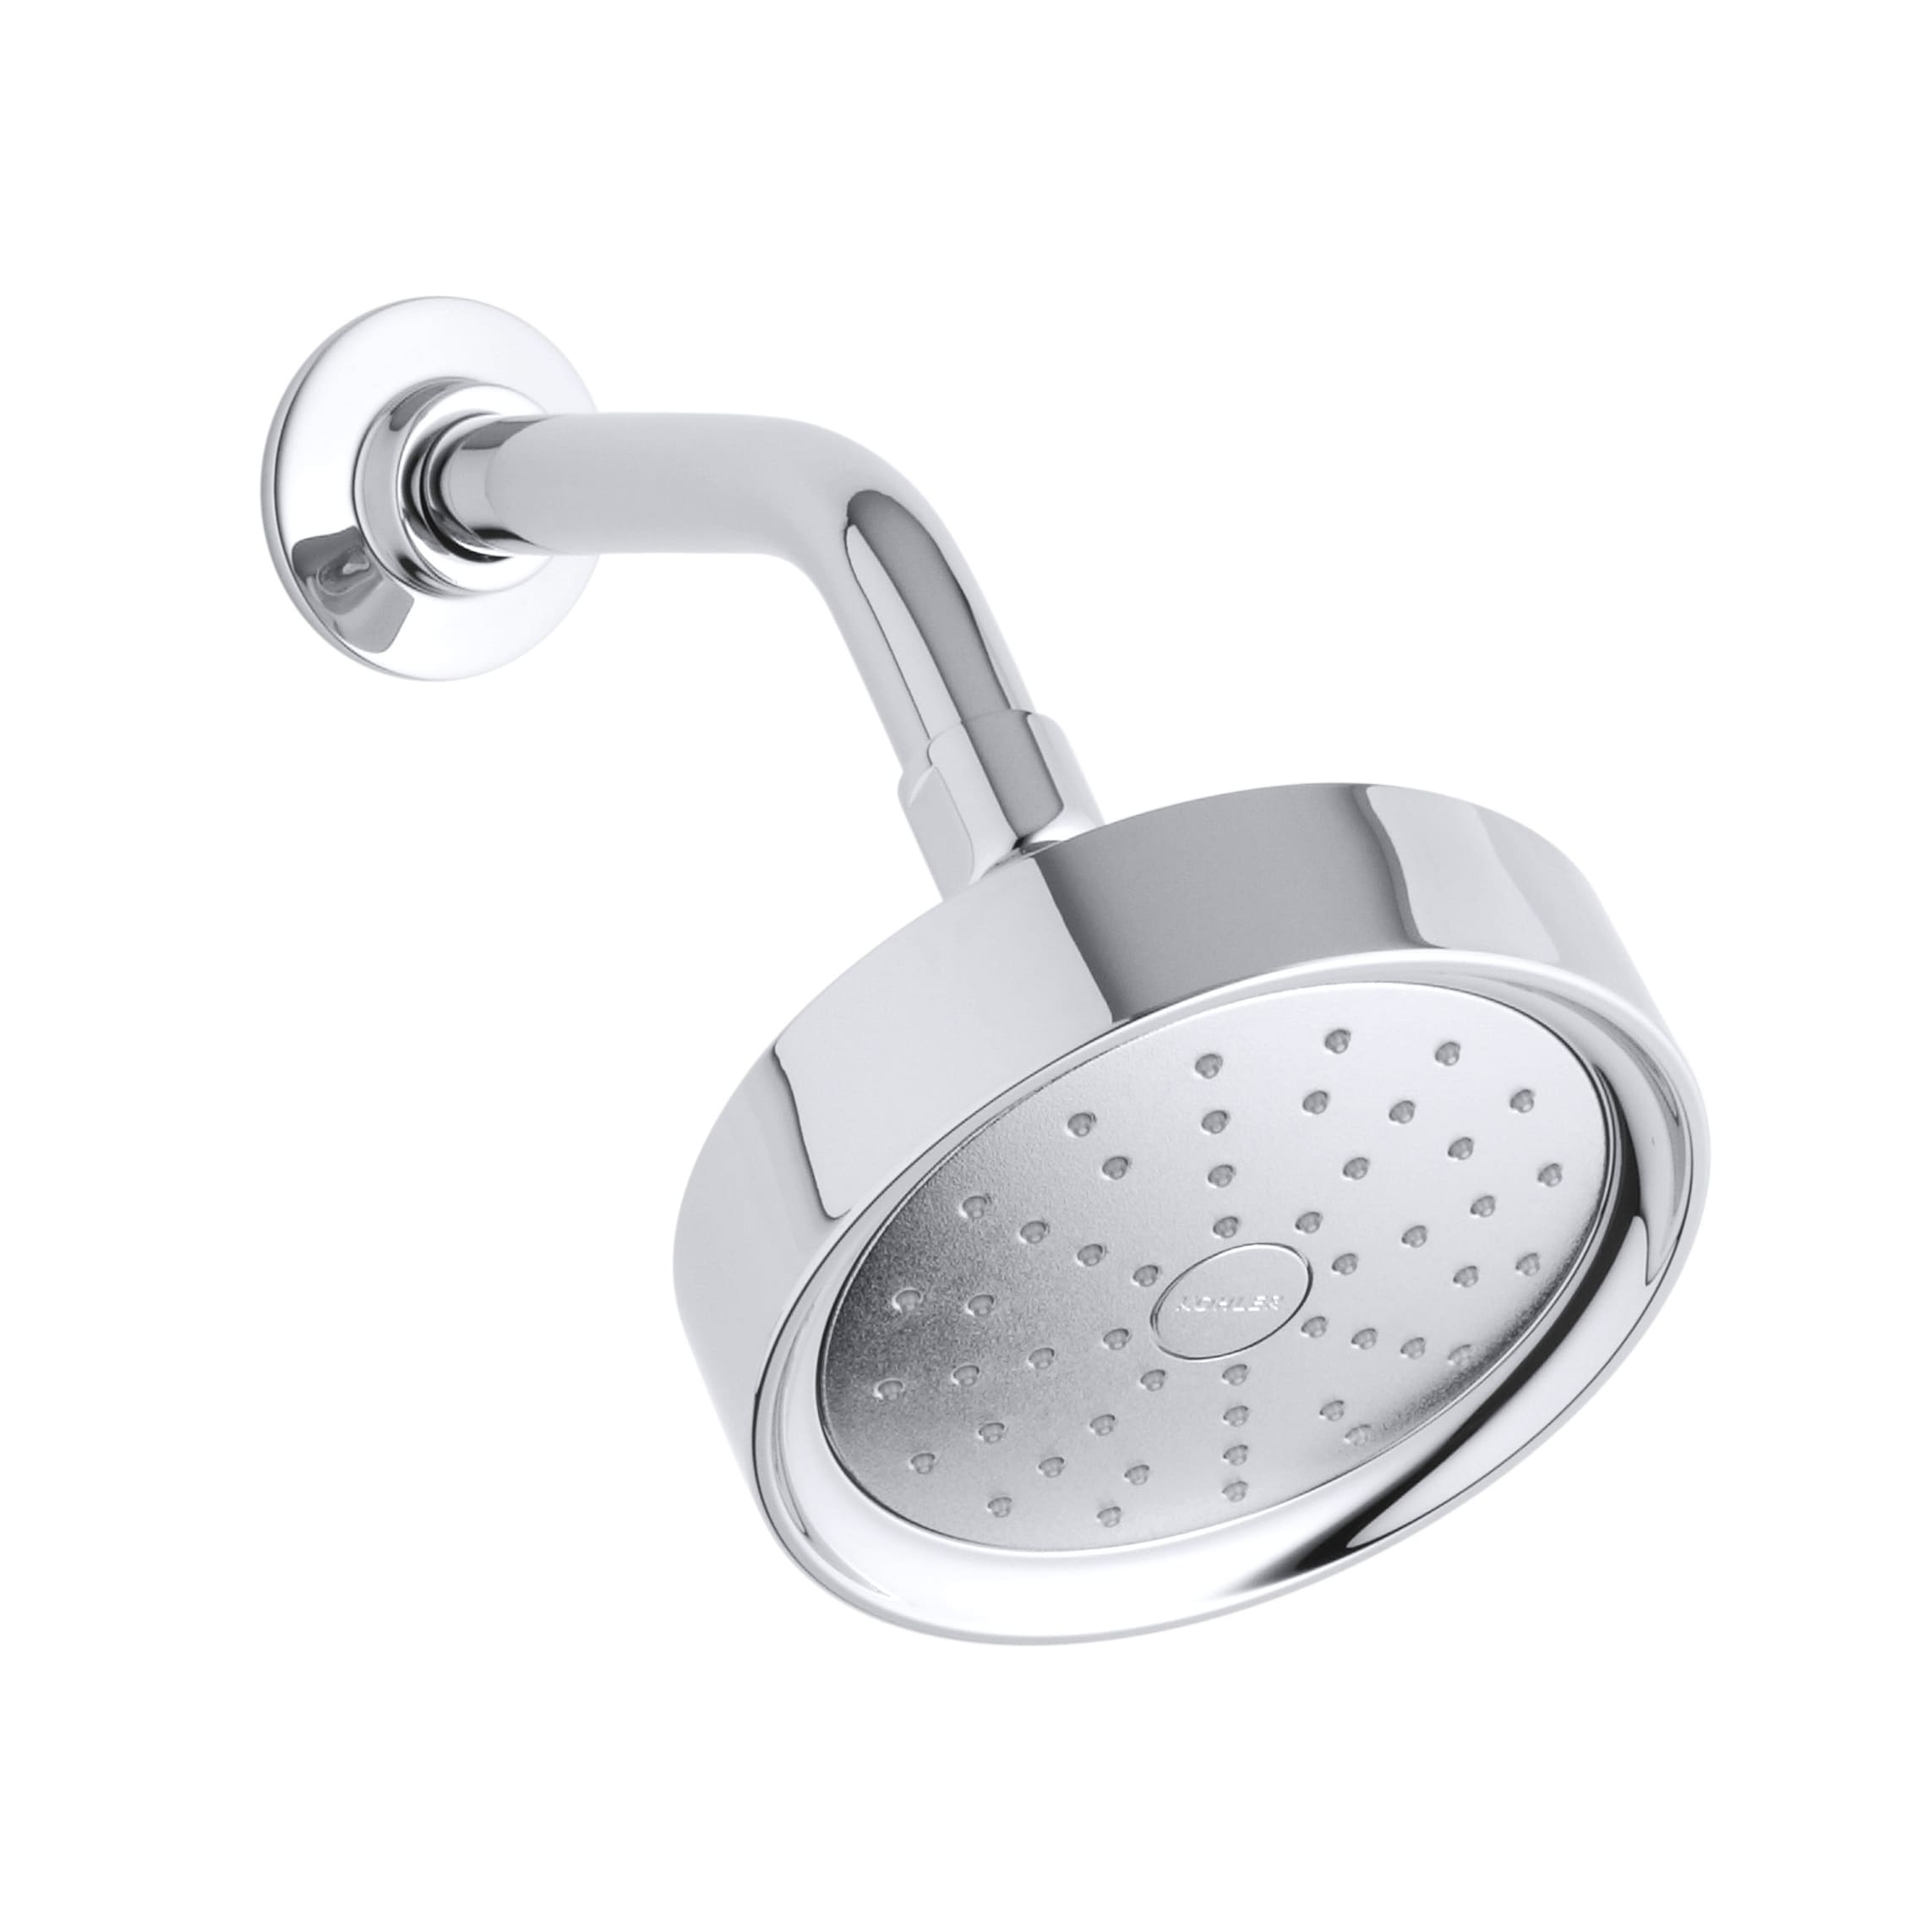 Kohler Purist Polished Chrome Single Function Shower Head With Katalyst Spray